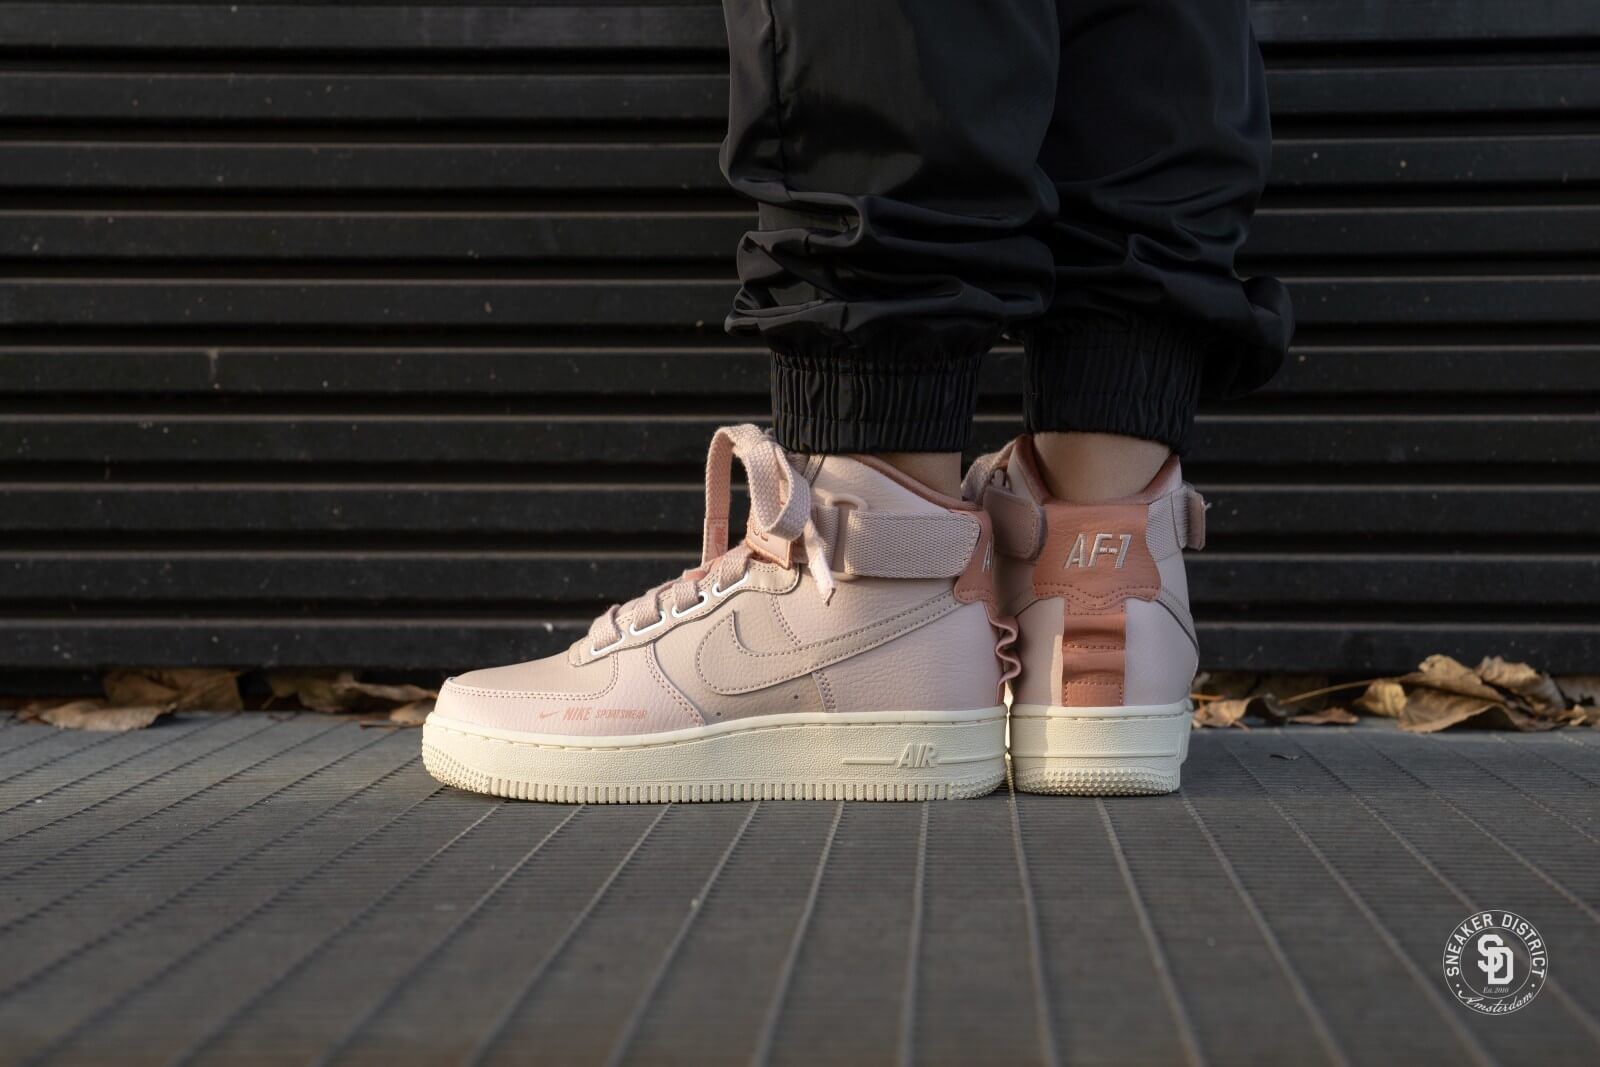 Nike Air Force 1 High Utility Particle Beige For Women